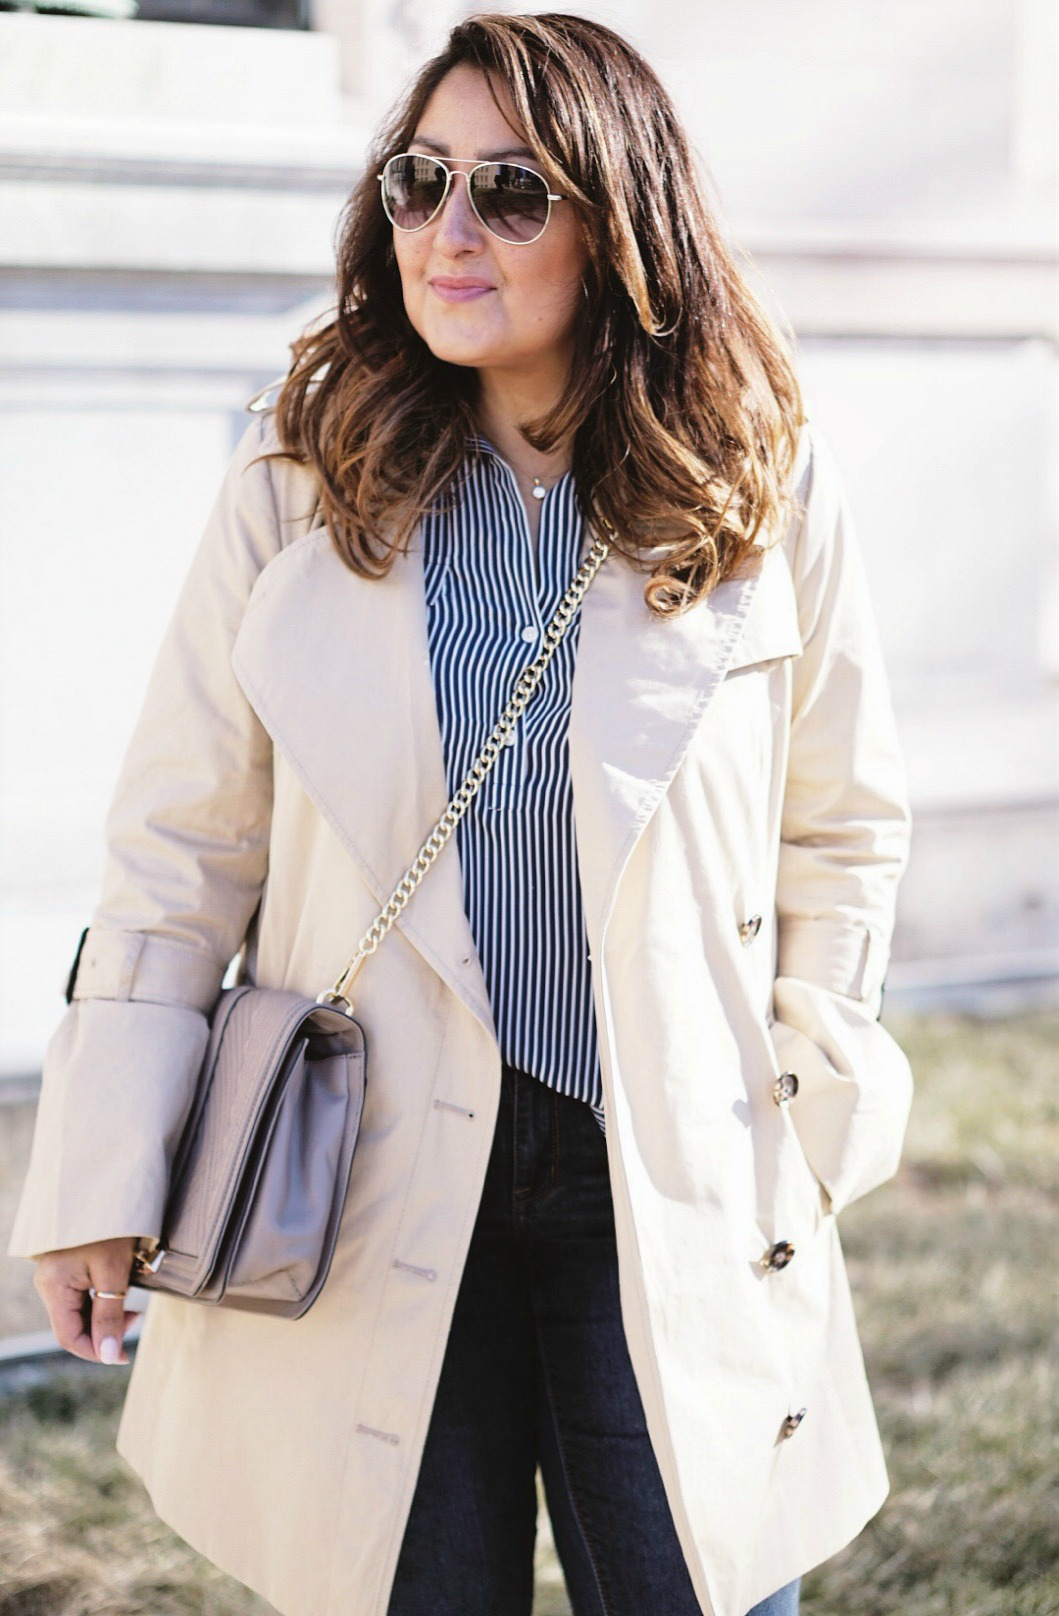 Banana Republic trench coat for a casual look.